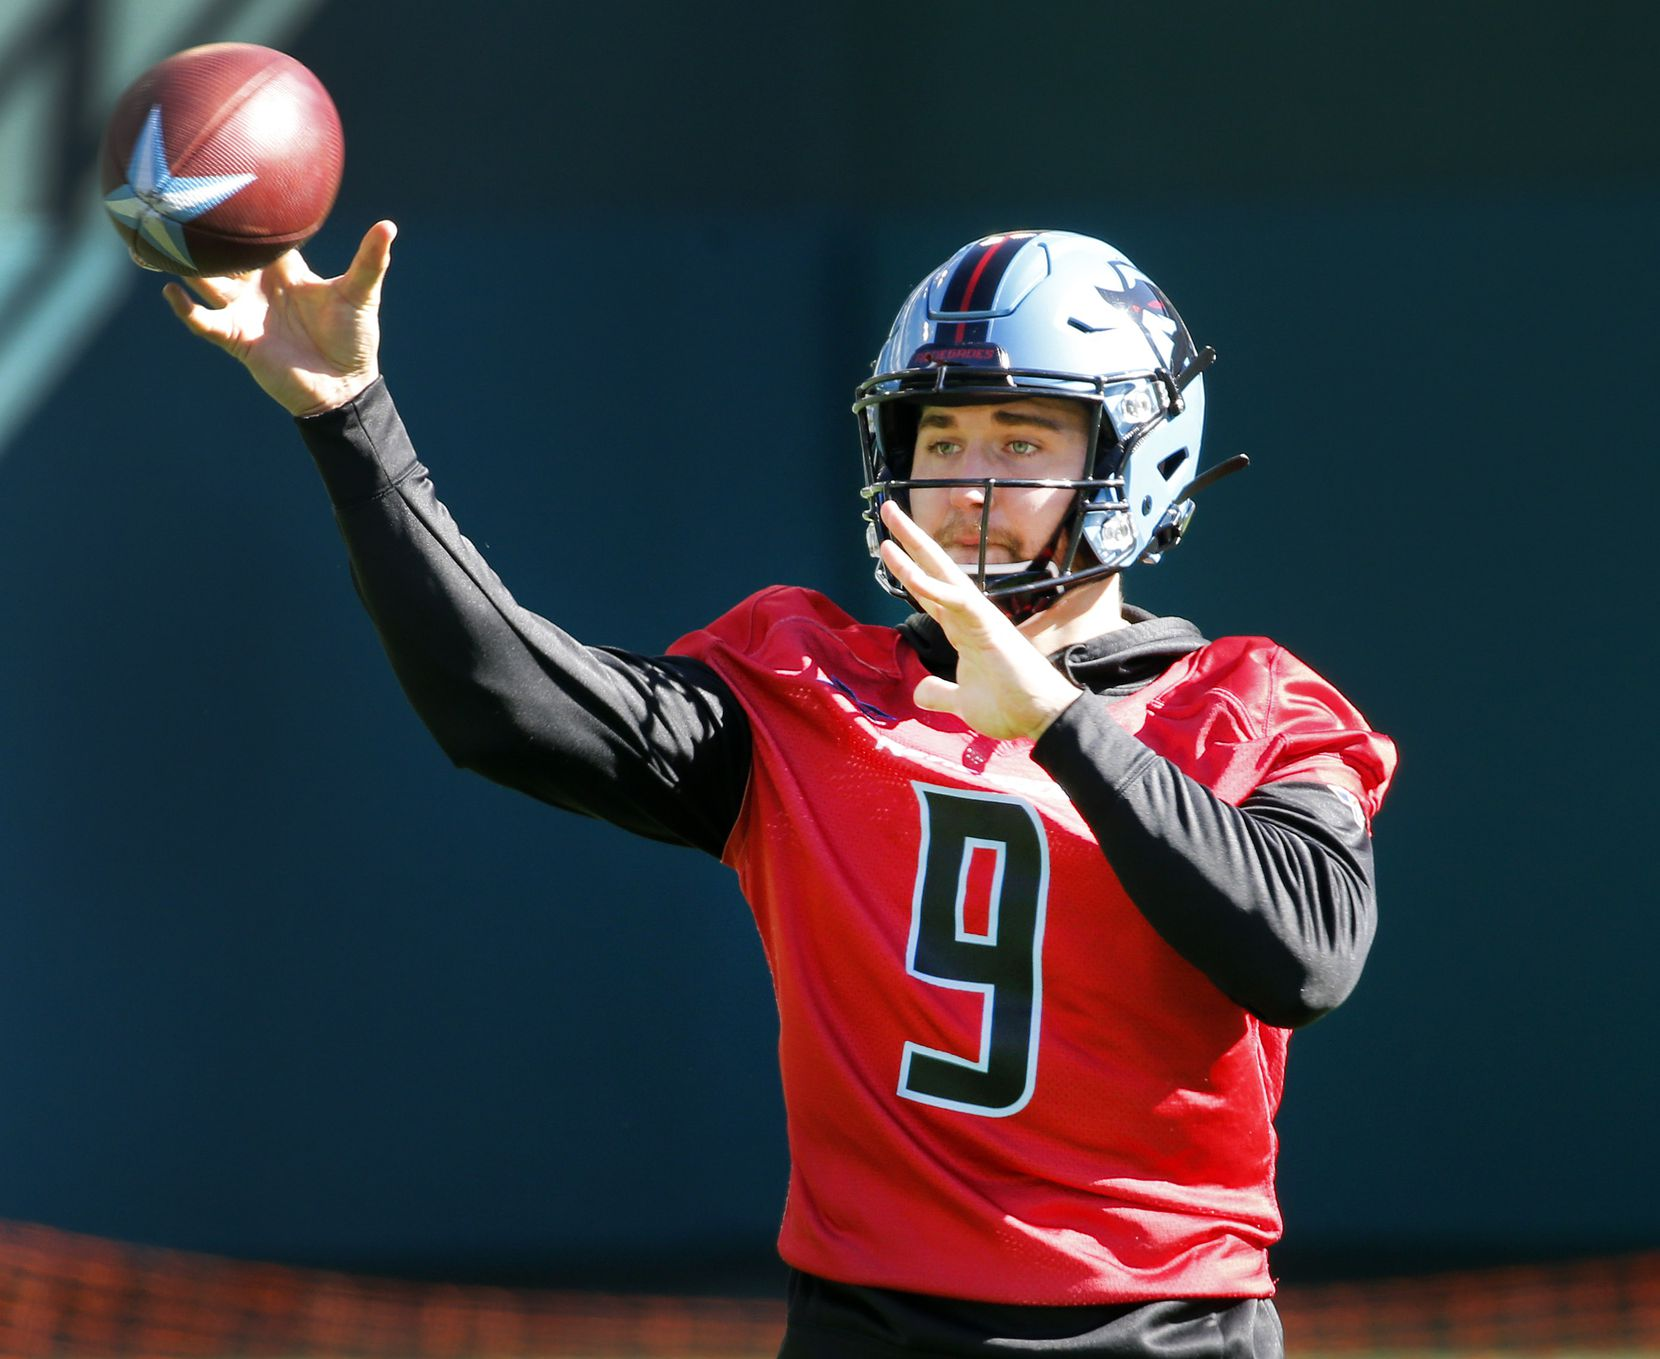 Dallas Renegades quarterback Philip Nelson (9) throws a pass during practice on the newly constructed football field at Globe Life Park in Arlington, Texas, Saturday, February 1, 2020. Nelson may start if Landry Jones hasn't fully recovered from an injury. Their season starts February 9.